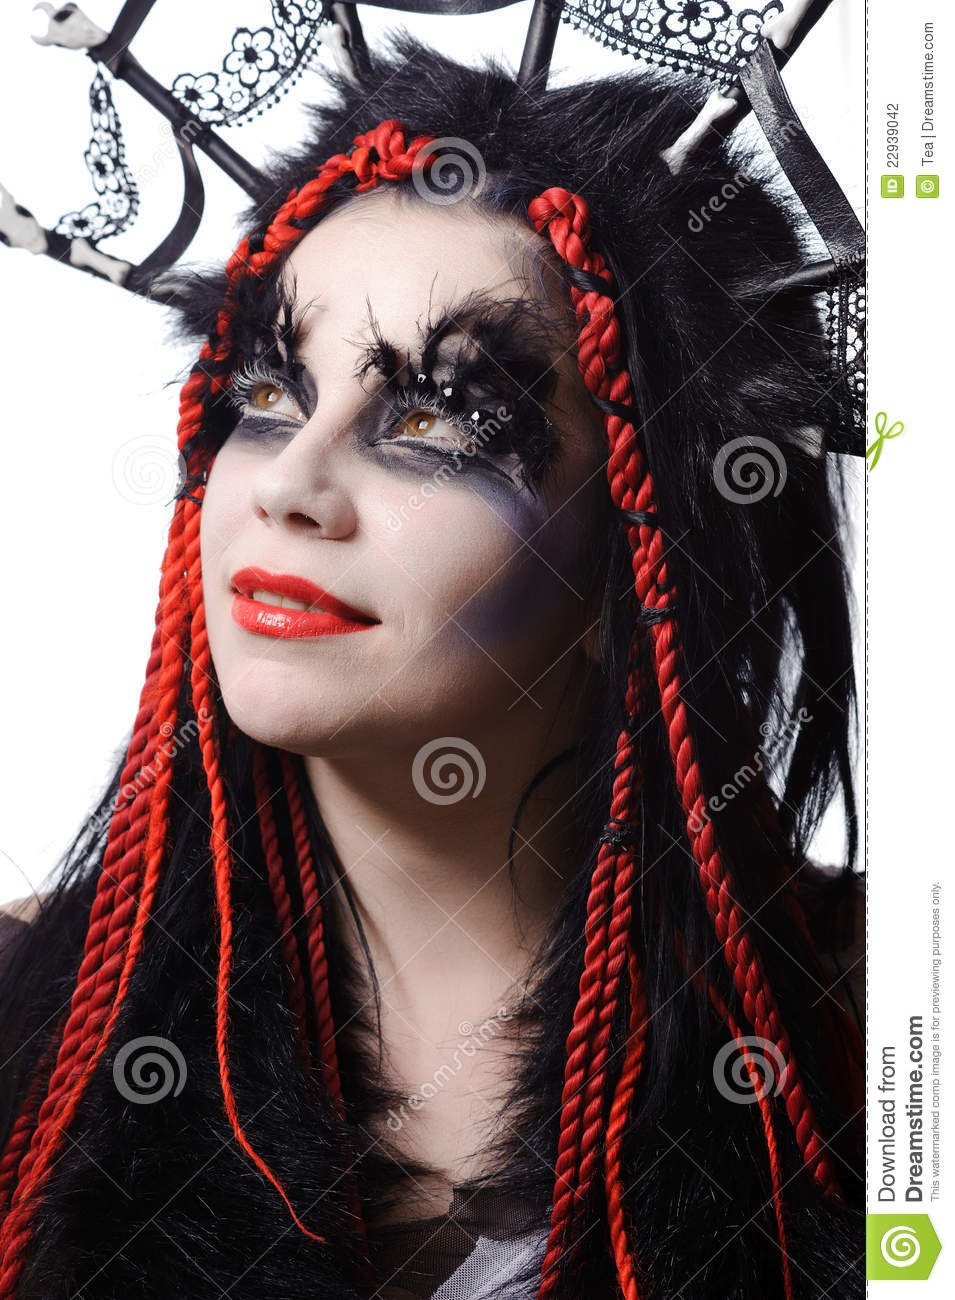 Woman With Voodoo Shaman Make Up Stock Photography Image